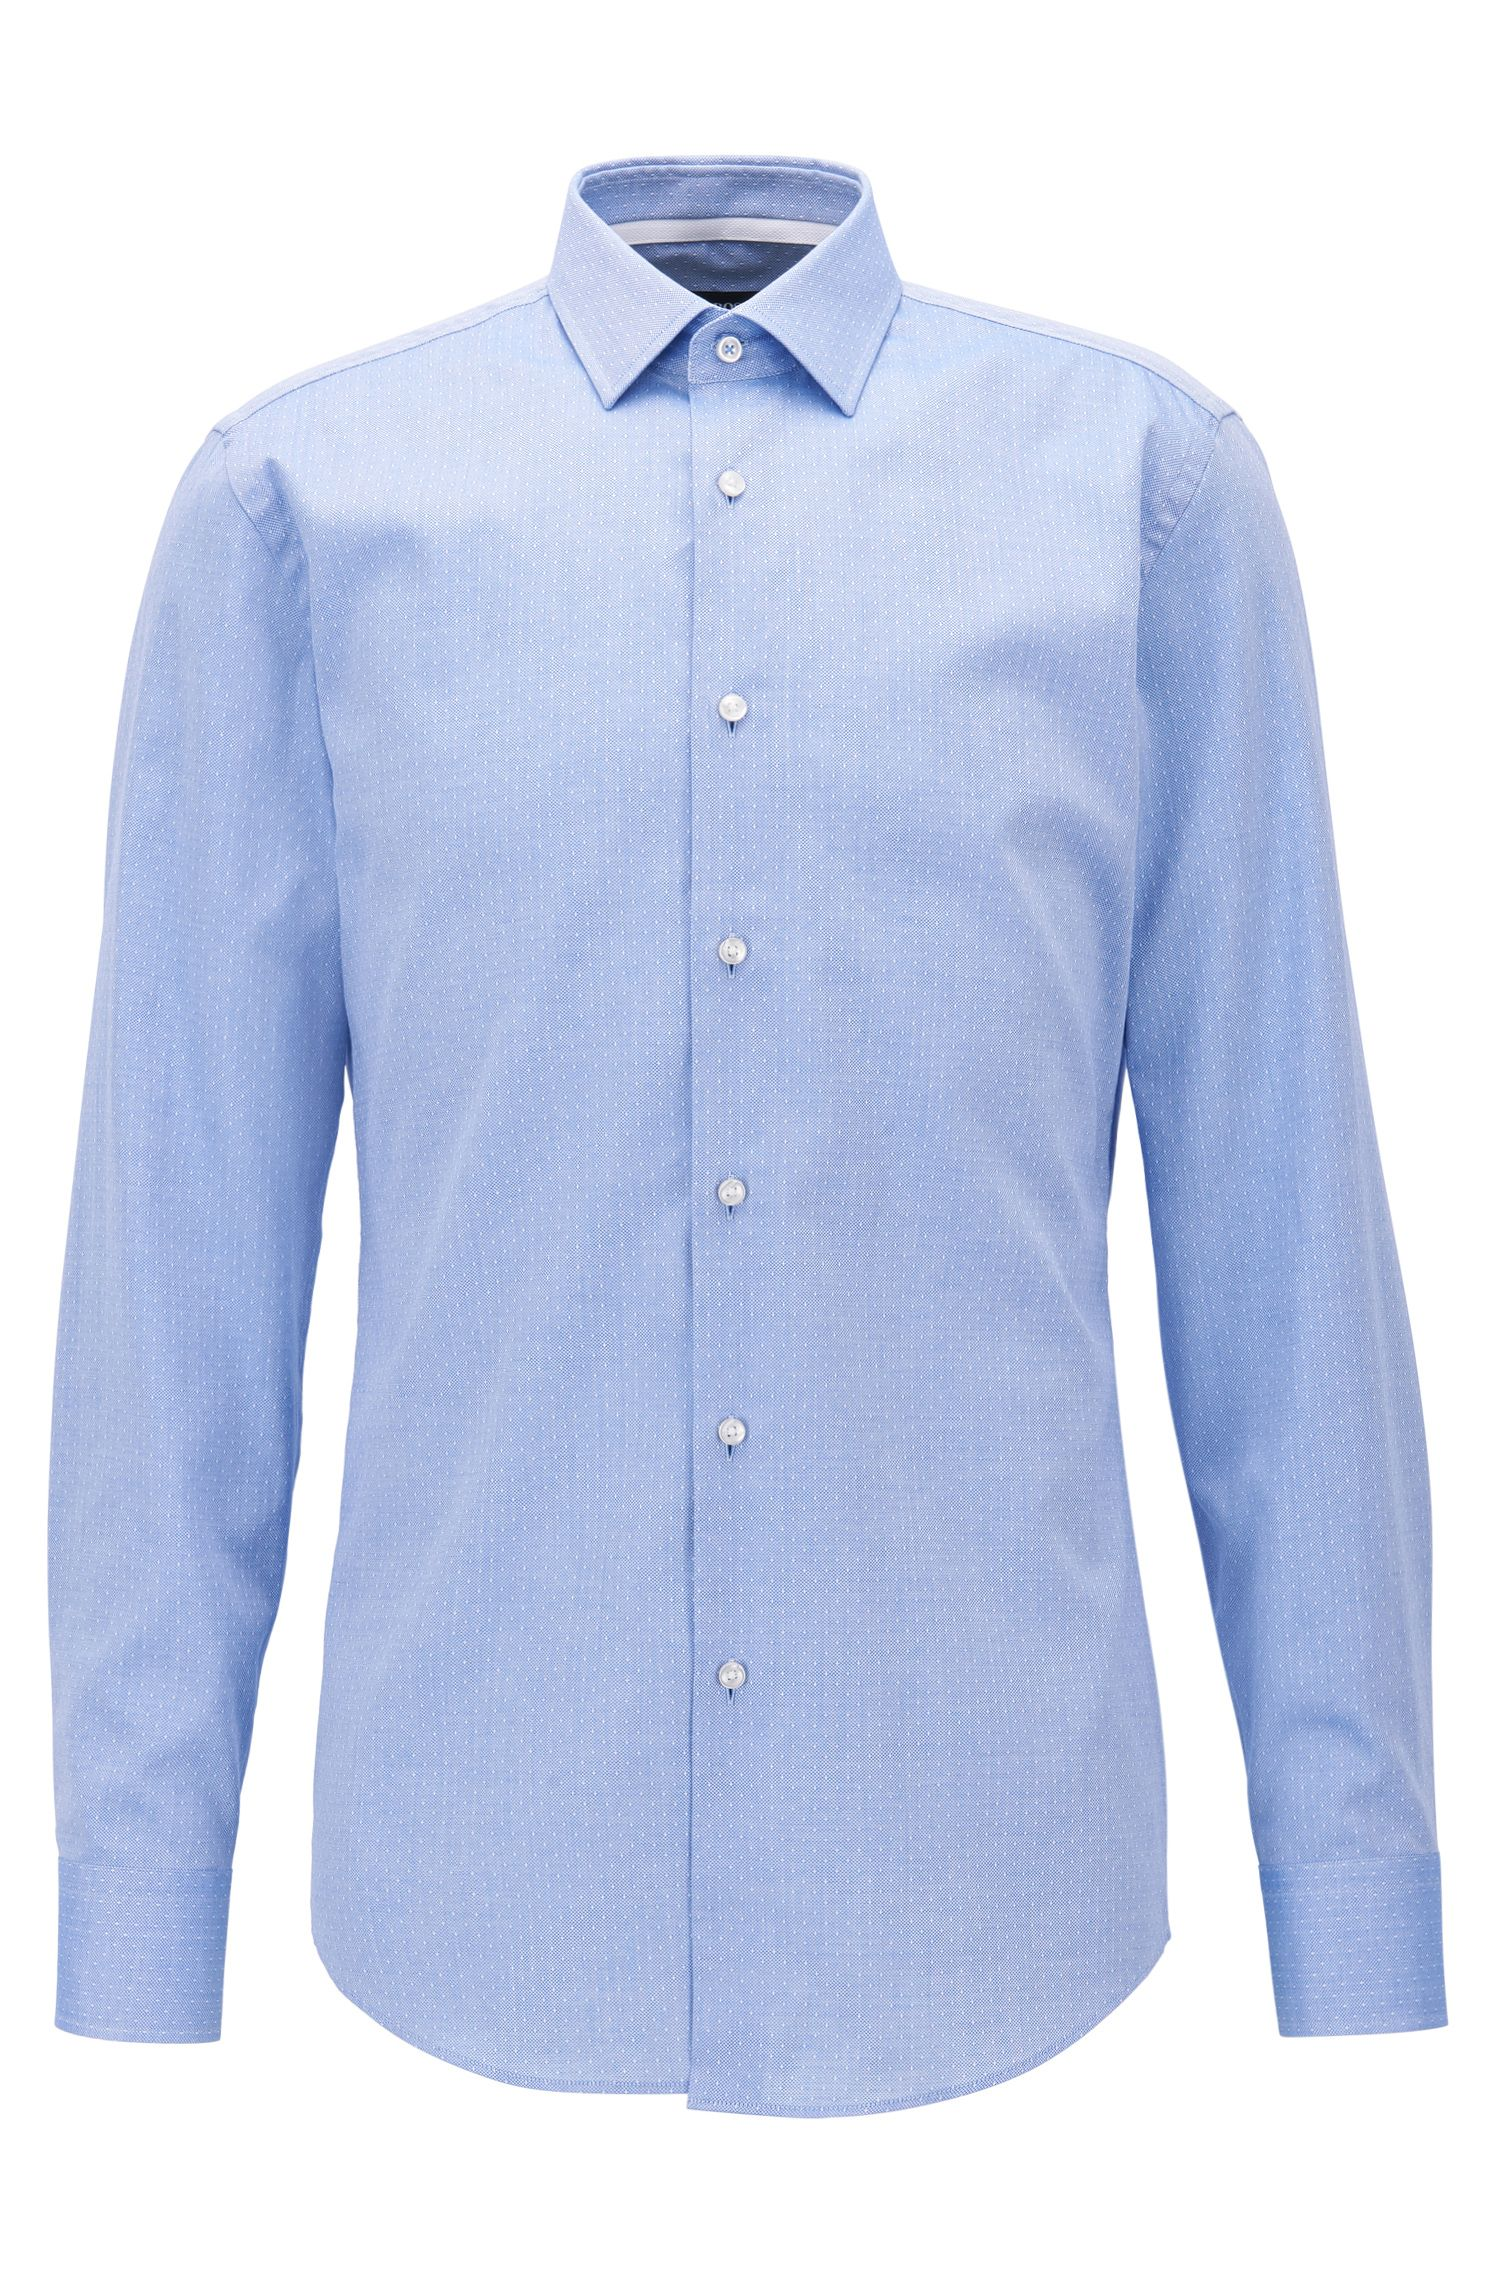 Dot-Print Cotton Dress Shirt, Slim Fit | Jesse, Blue